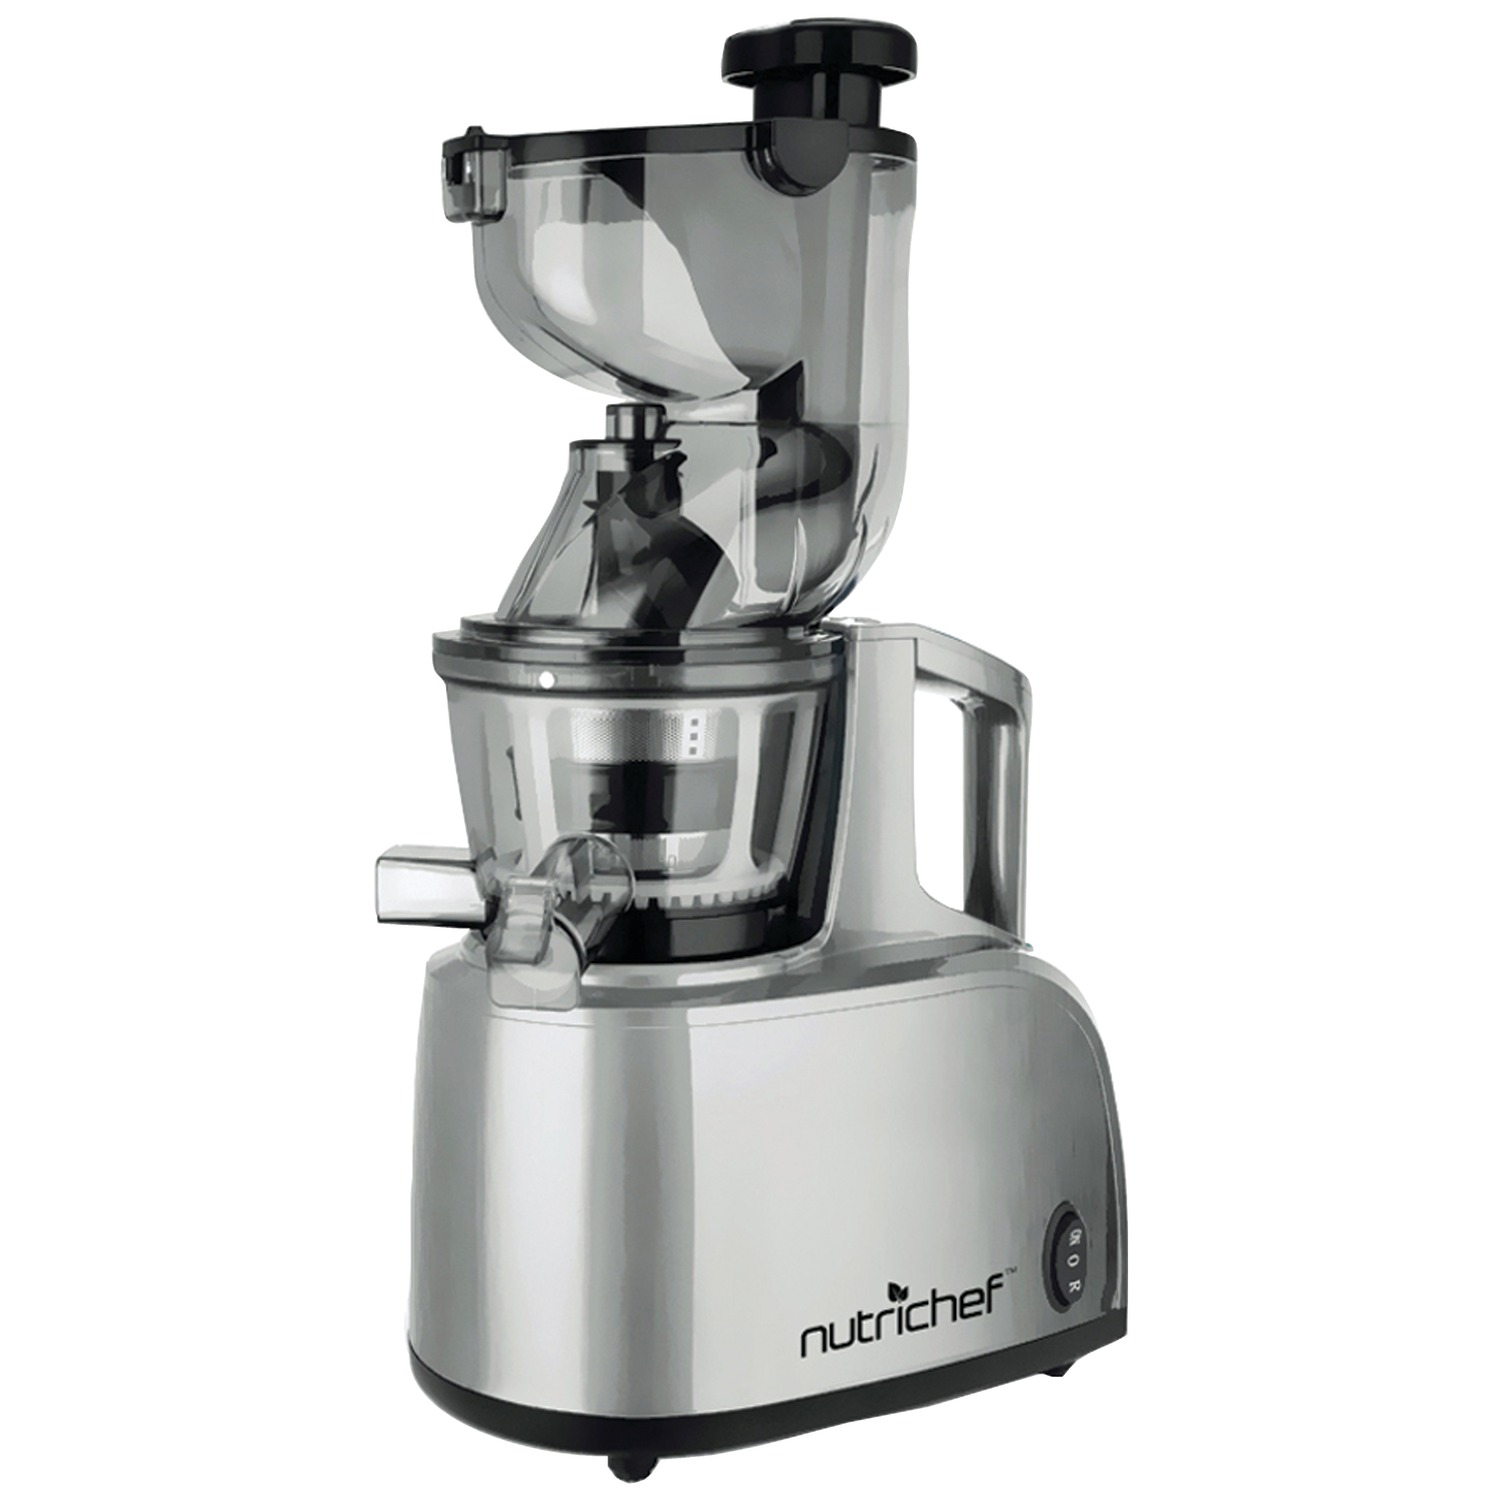 Slow Juicer With Salad Maker : NUTRICHEF PKSJ40 Countertop Masticating Slow Juicer & Drink Maker